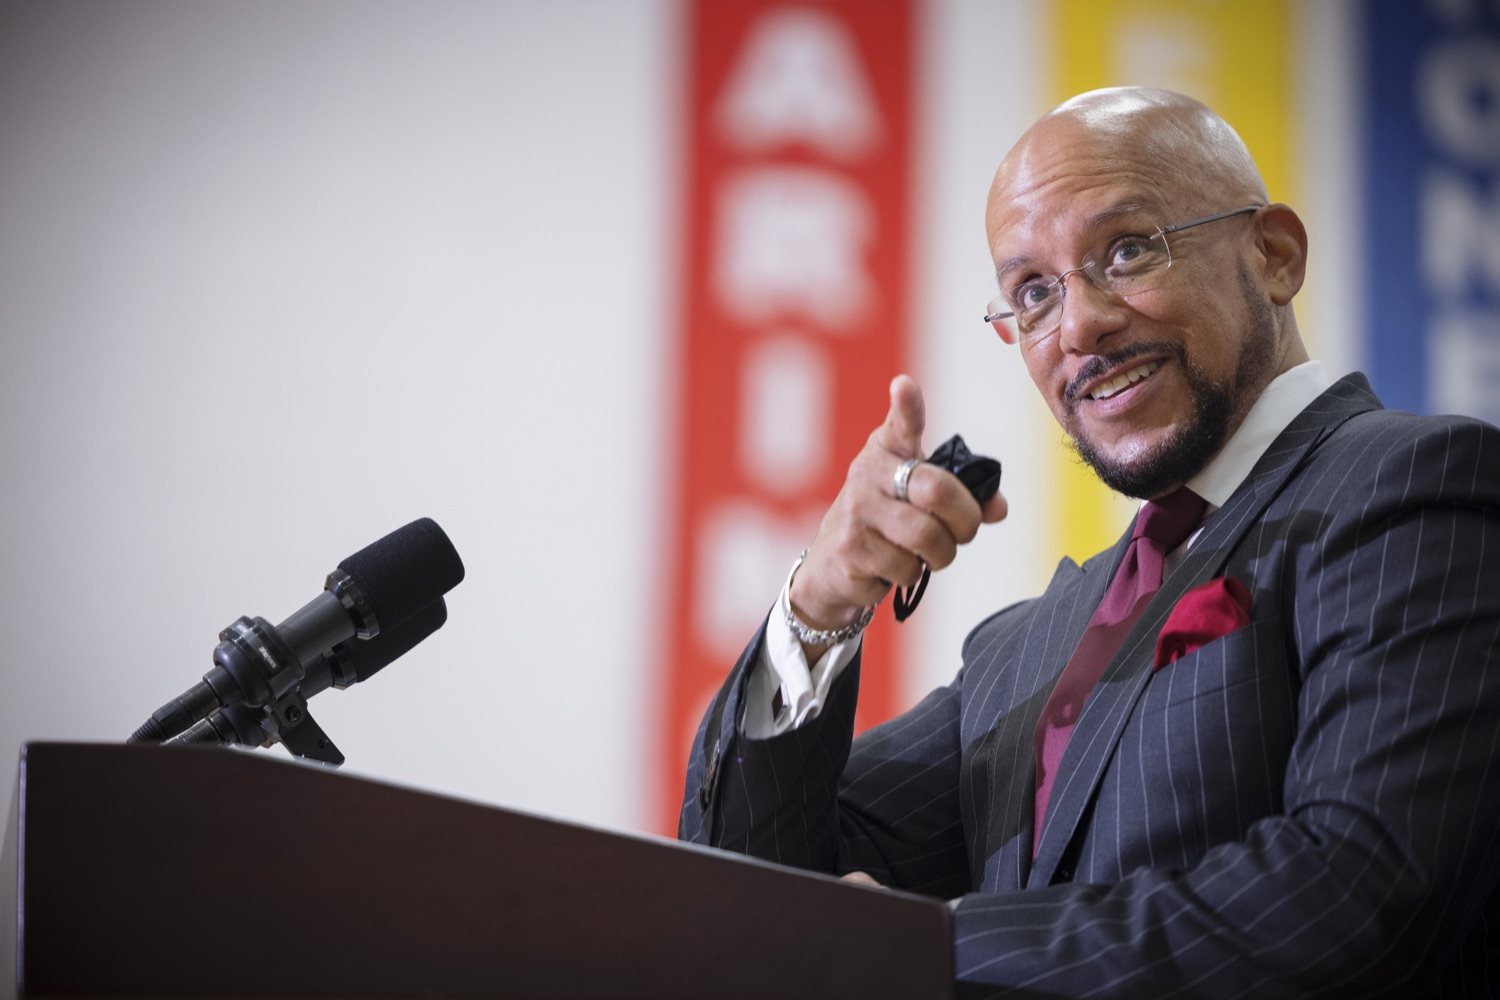 """<a href=""""https://filesource.wostreaming.net/commonwealthofpa/photo/20078_gov_gunviolence_dz_019.jpg"""" target=""""_blank"""">⇣Download Photo<br></a>Pennsylvania State Senator Vince Hughes speaking with the press.  Governor Tom Wolf today joined state lawmakers to remind communities and organizations that $24 million in state funding is available to address community violence.  Philadelphia, PA - September 23, 2021"""